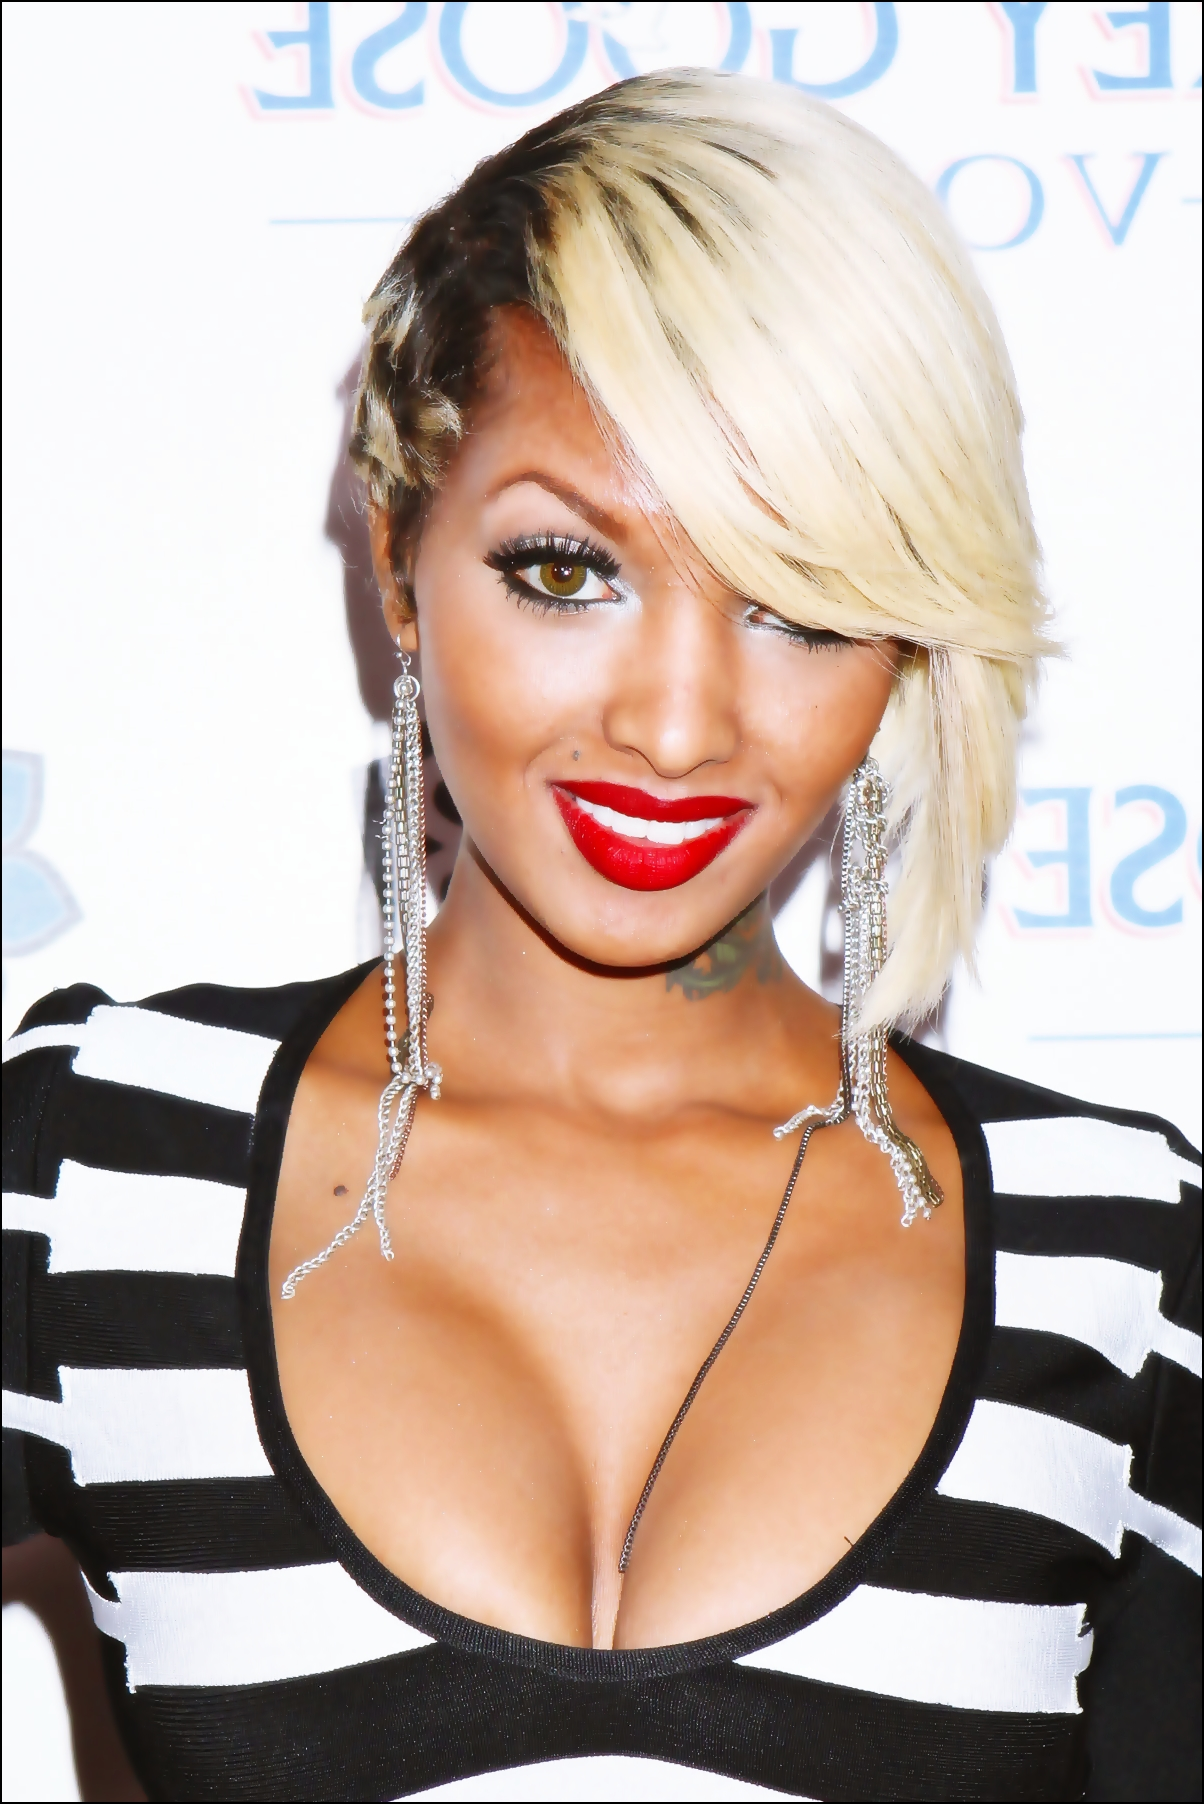 Lola Monroe Hairstyles Lola monroe and los tumblr